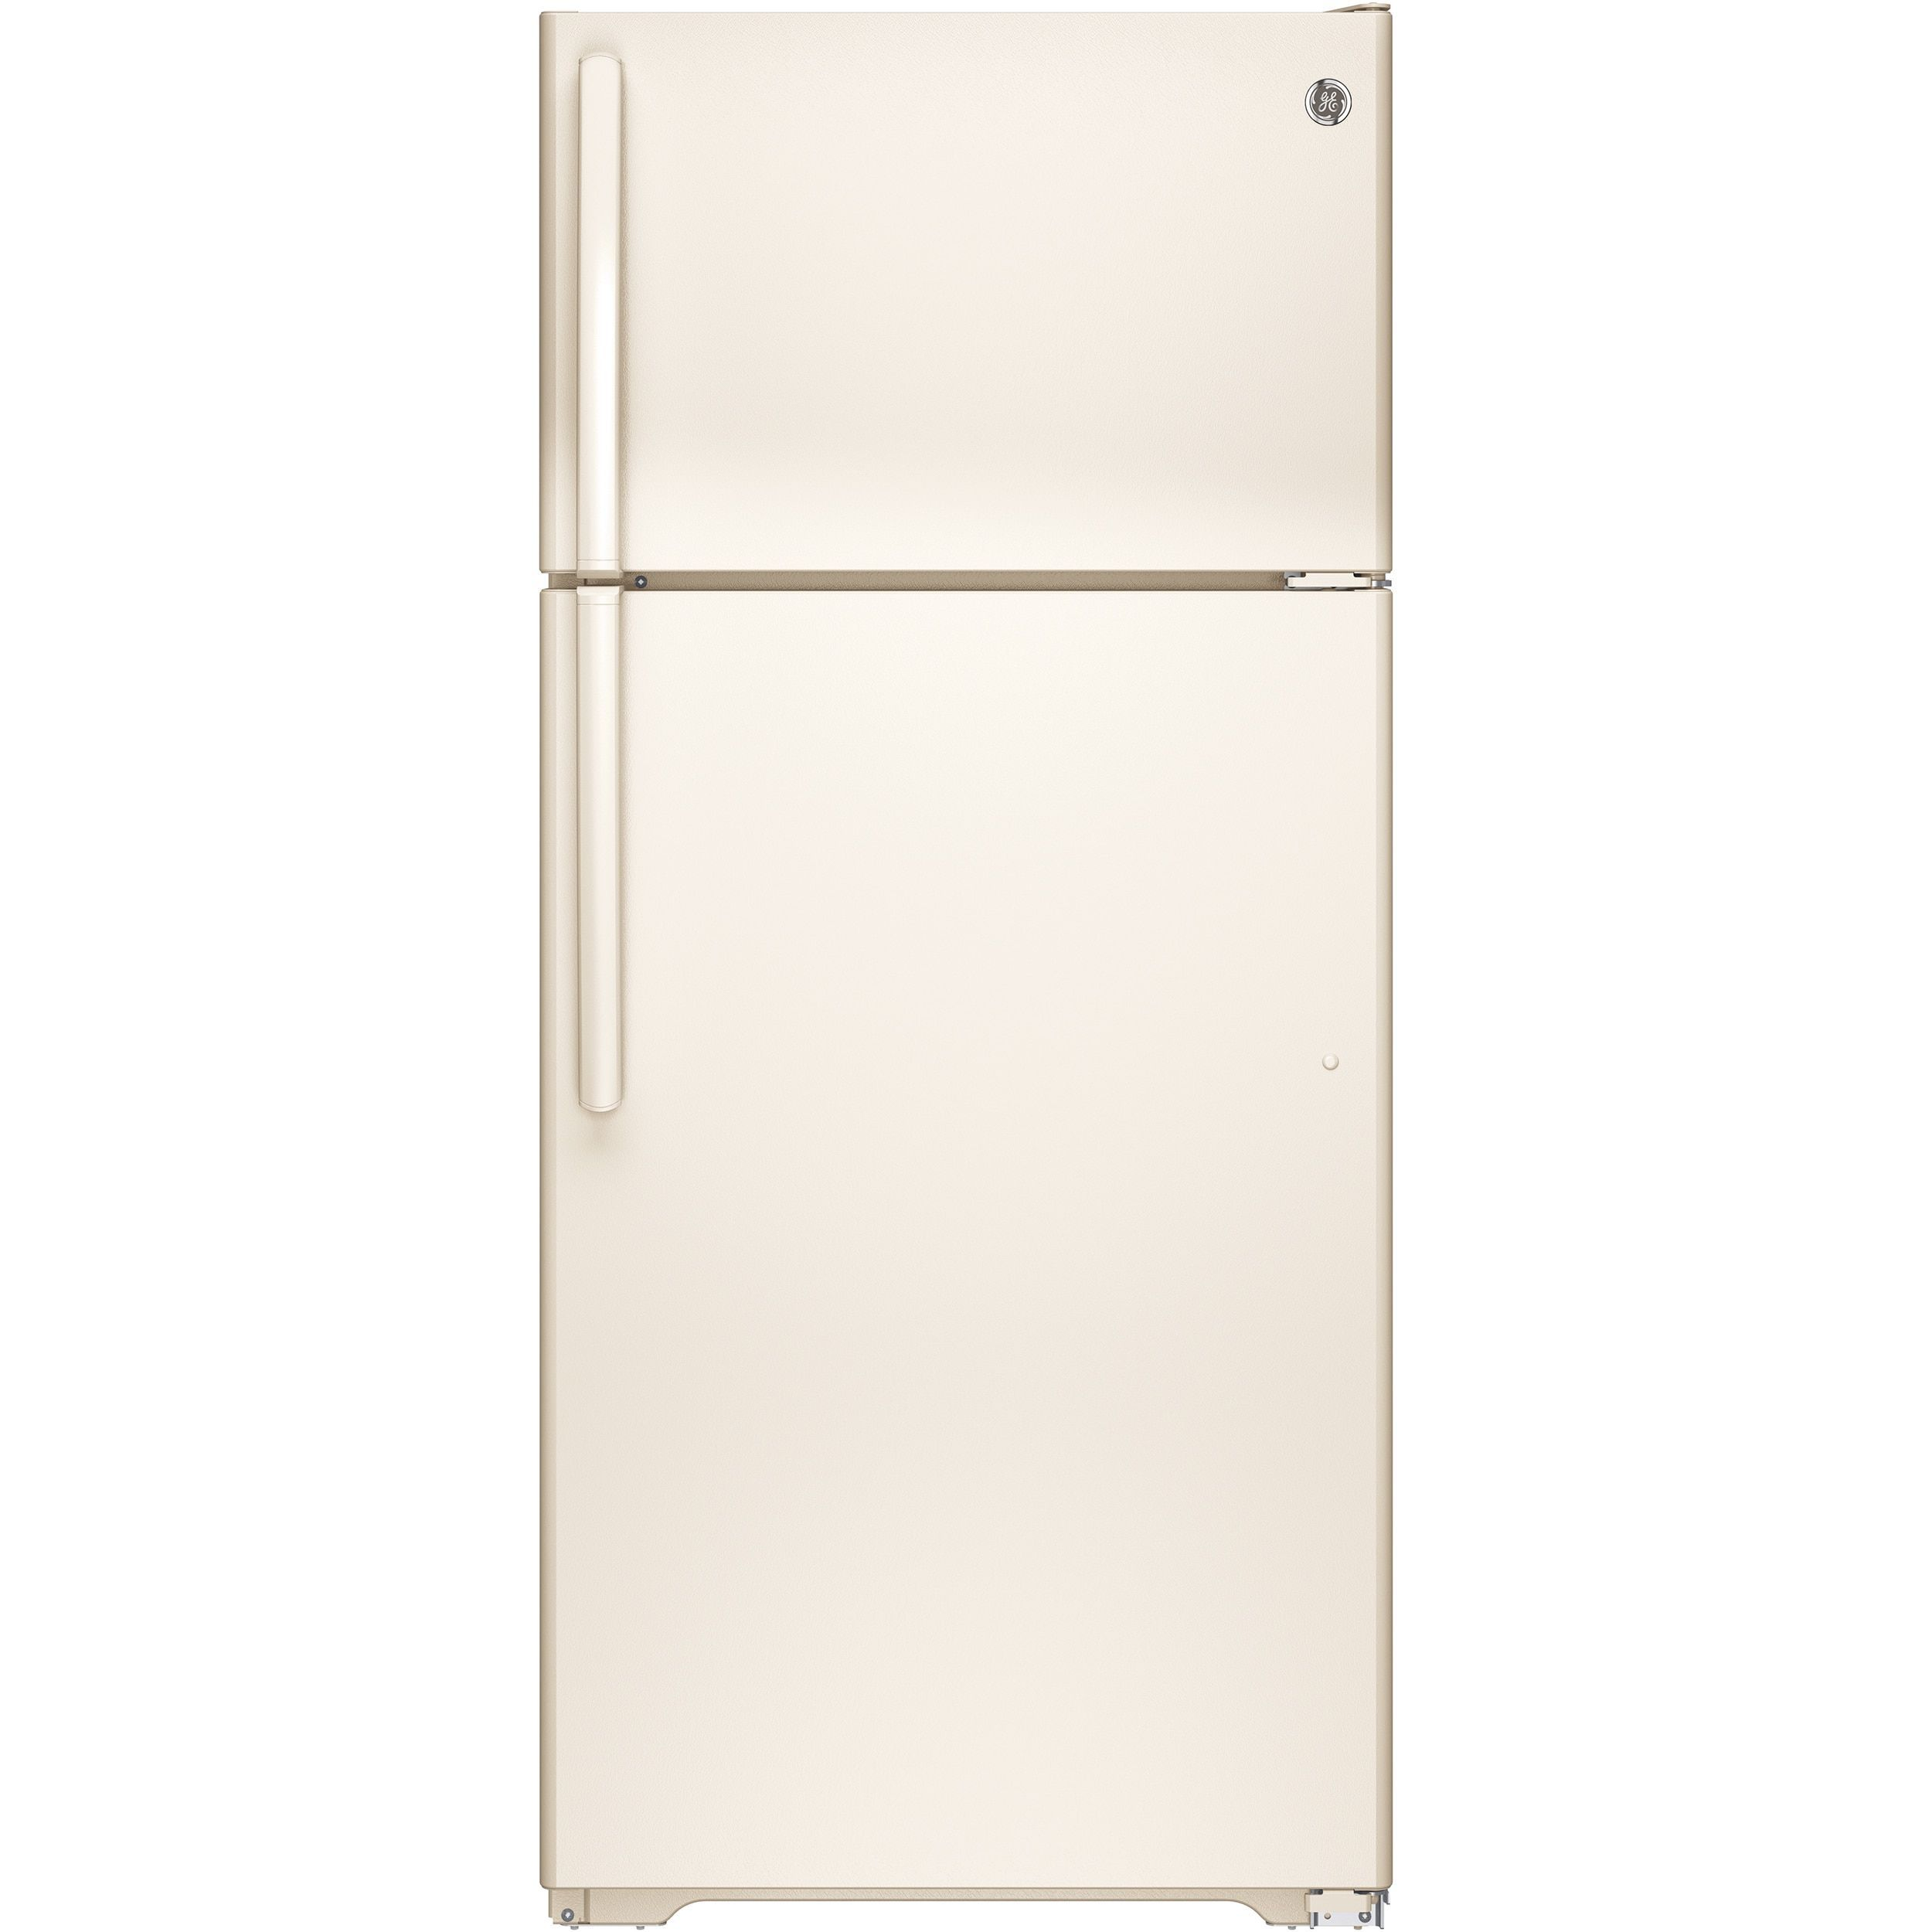 GE Energy Star 15 5 Cubic foot Bisque Top Freezer Refrigerator